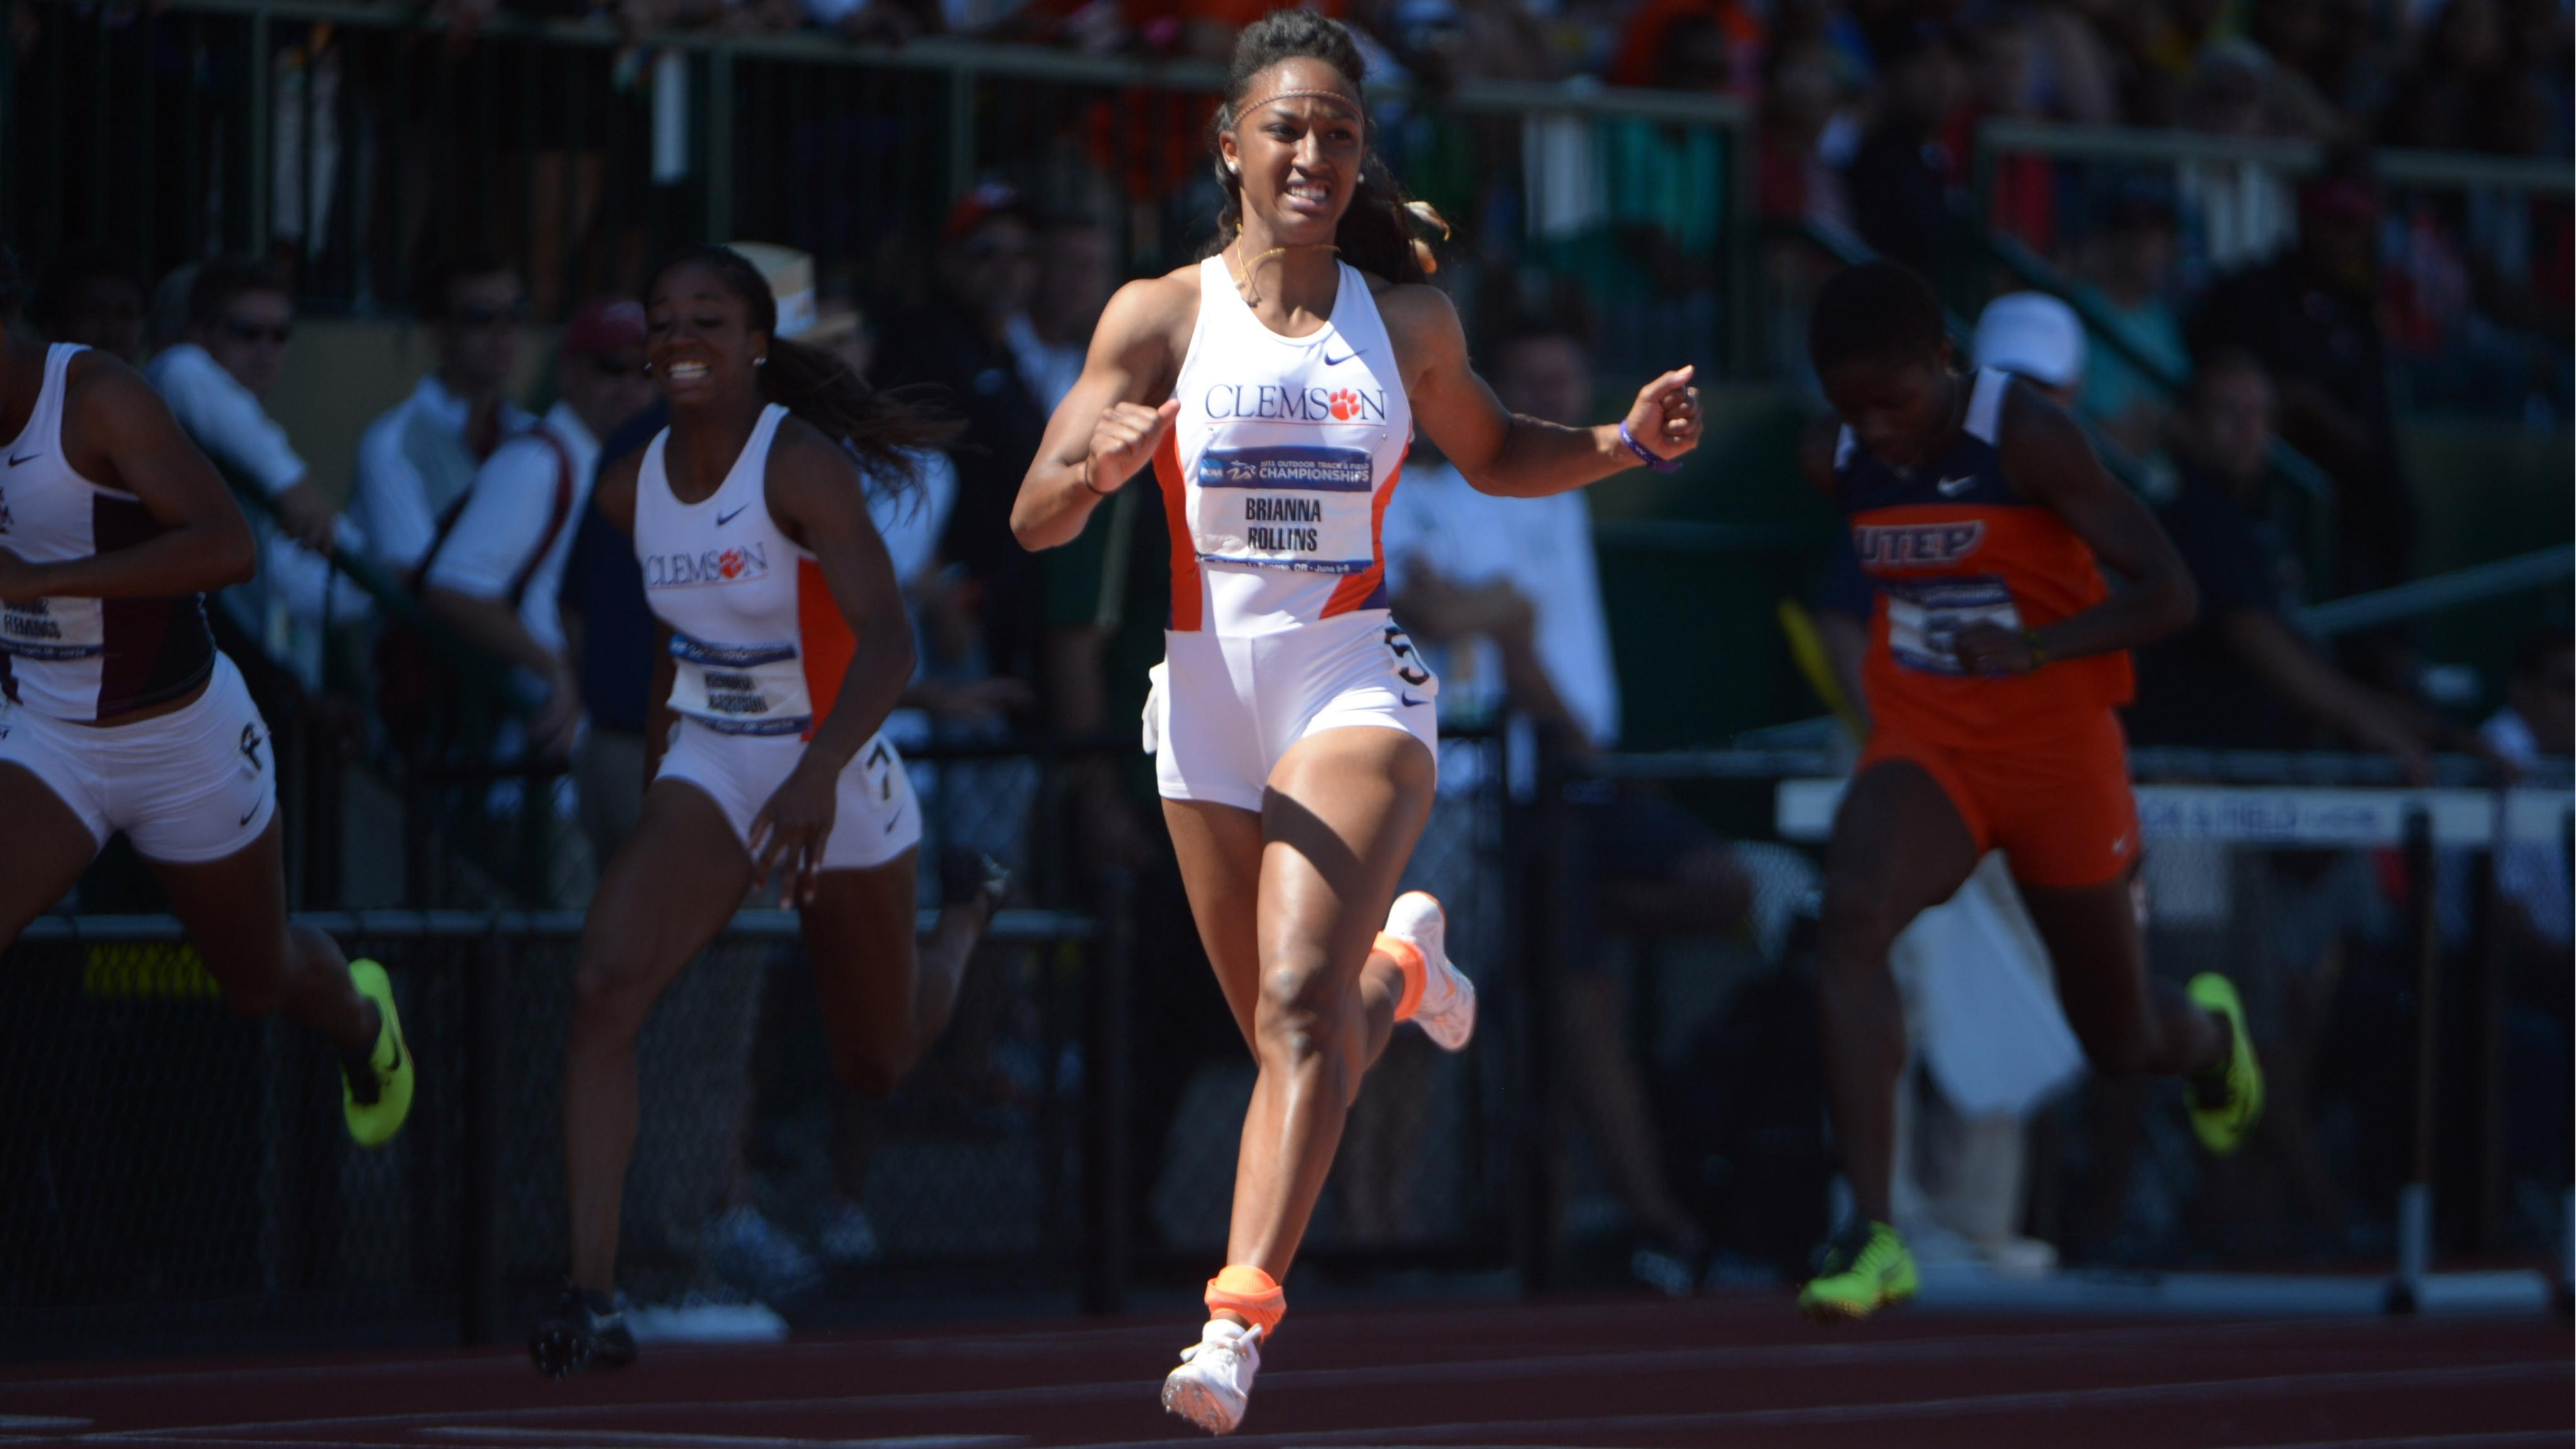 Rollins Named USA Track & Field Athlete of the Week